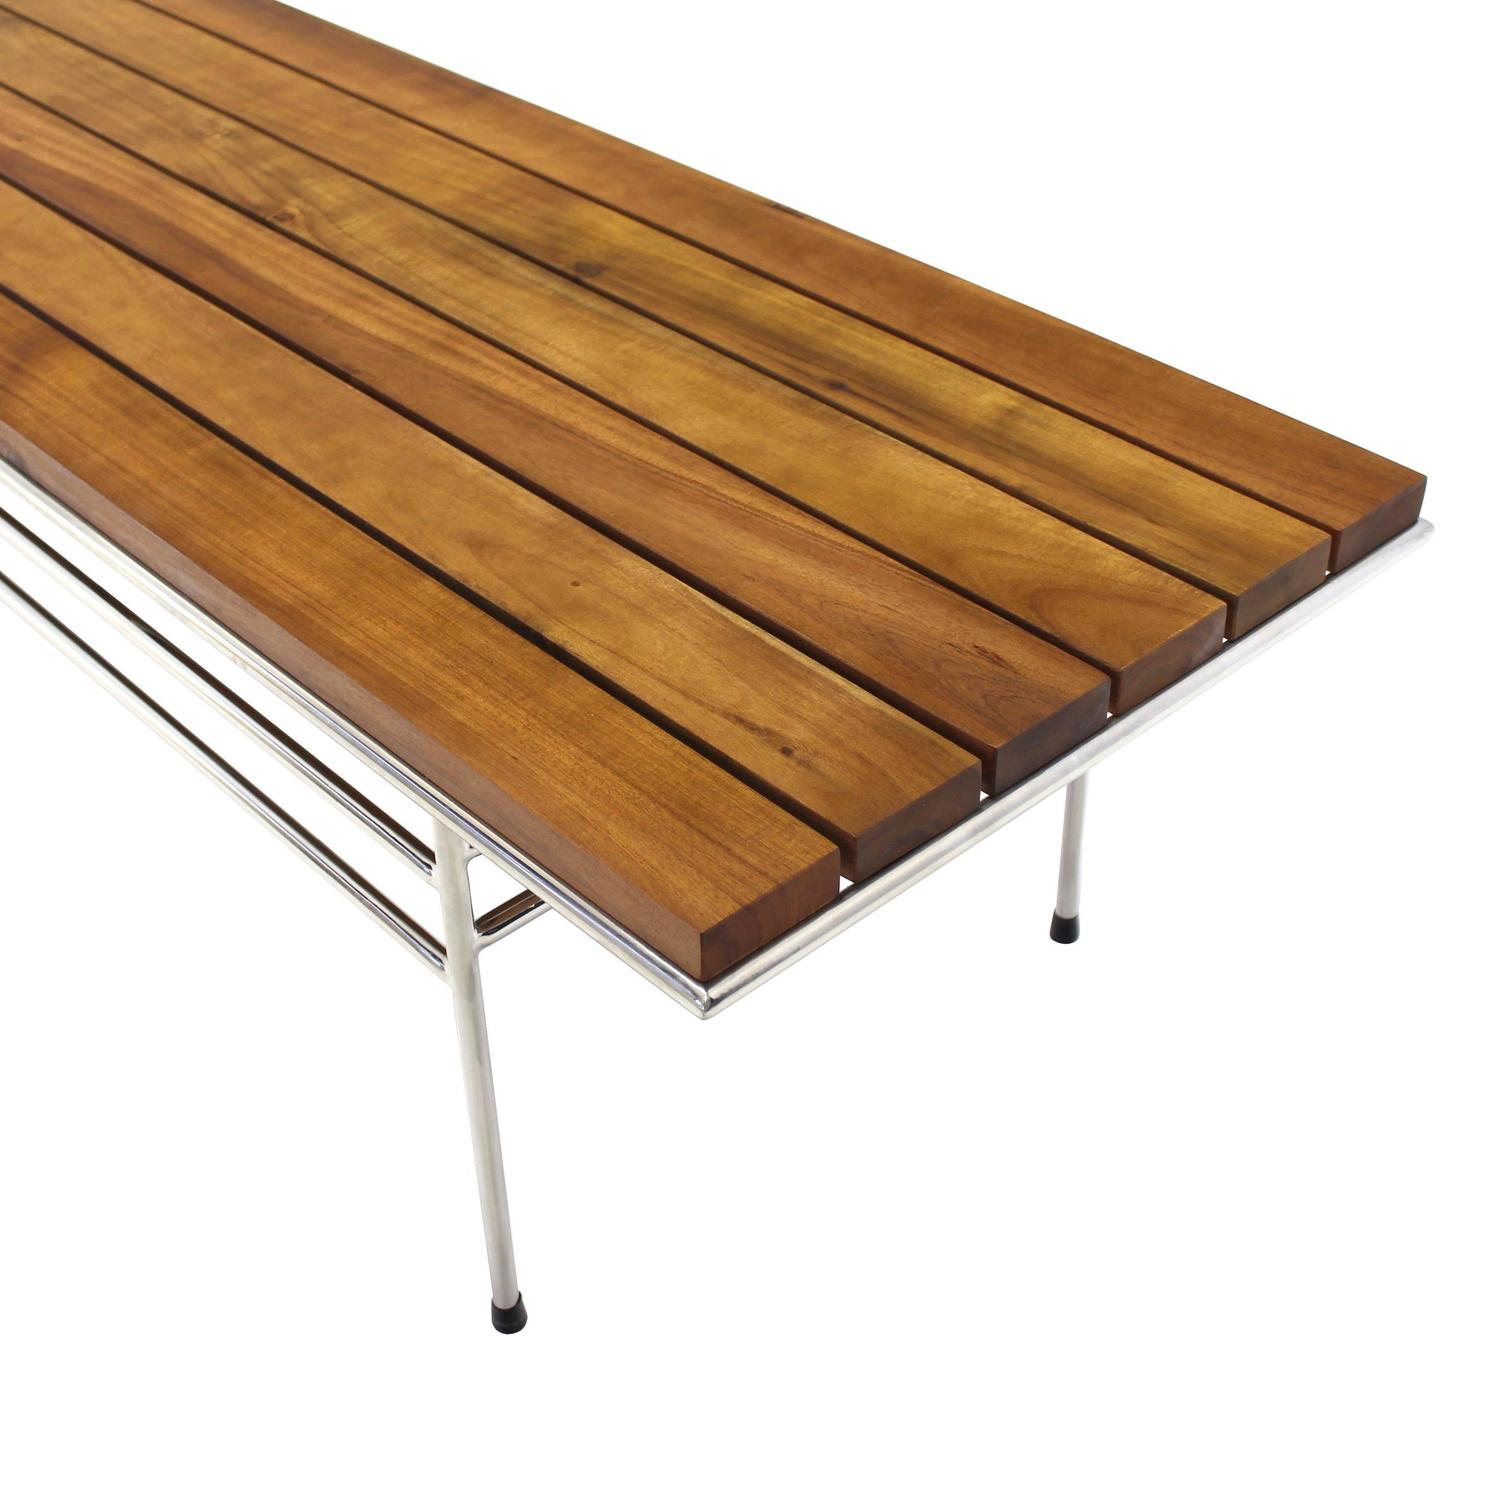 Solid Oiled Slat Wood Top Chrome Bench For Sale At 1stdibs